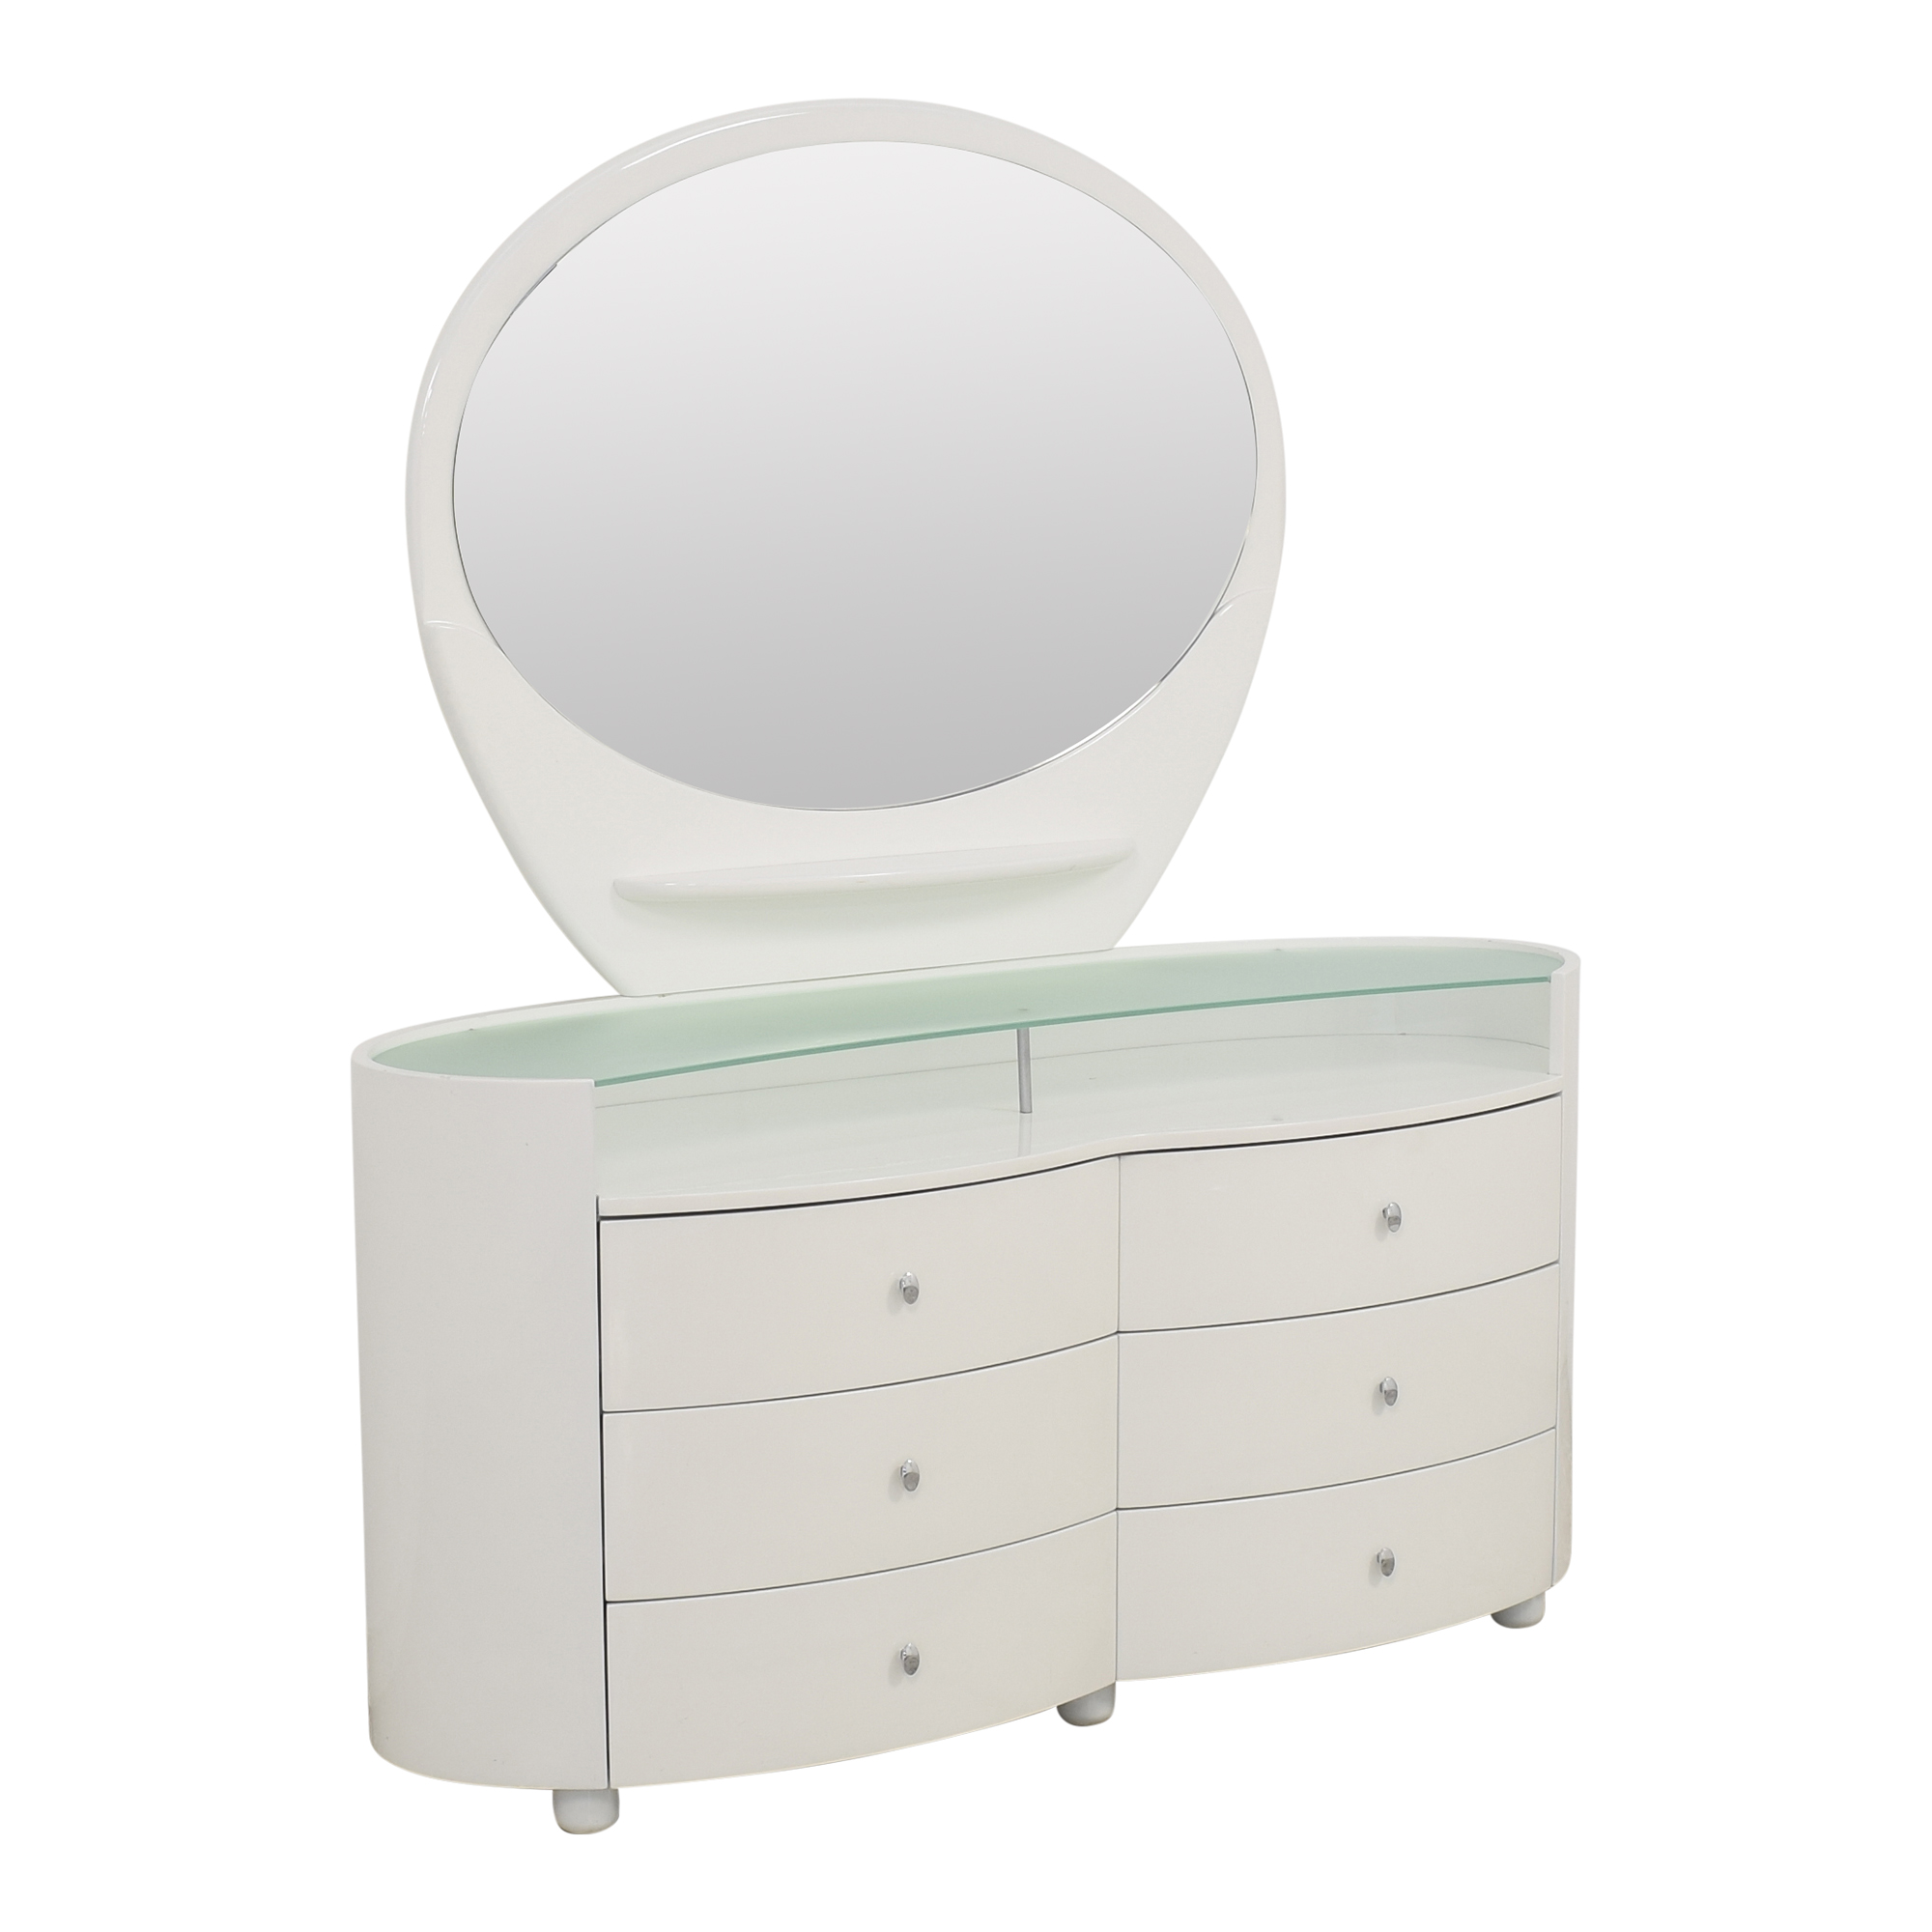 Vintage Style Dresser with Vanity Mirror for sale